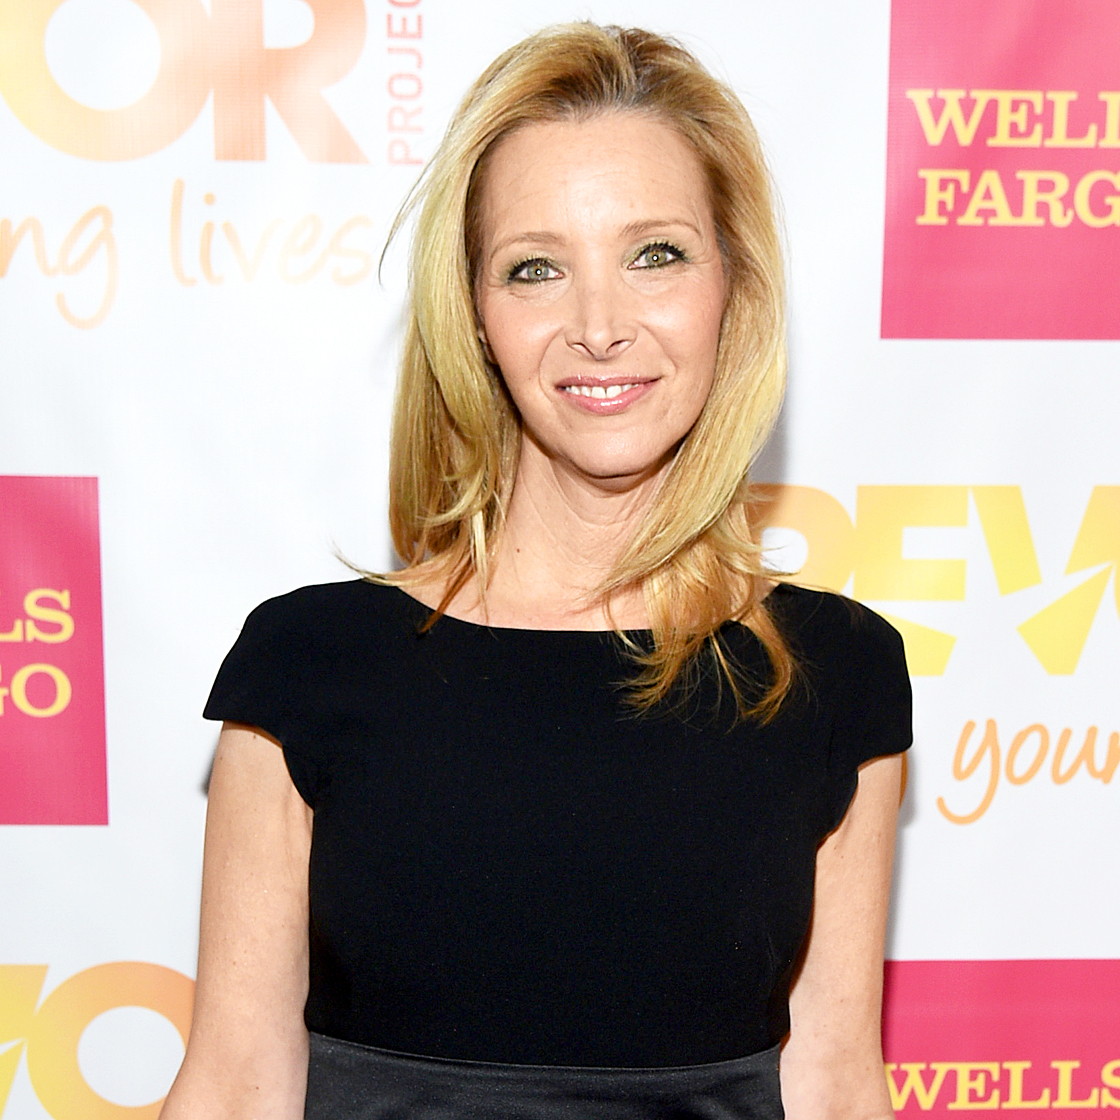 Now married with a son, Kudrow was the cocreator, writer and star of HBO's The Comeback in 2005, about a has-been sitcom star yearning for a second chance. Although the actress earned an Emmy nomination for her role as Valerie Cherish, the series was canceled after just 13 episodes.